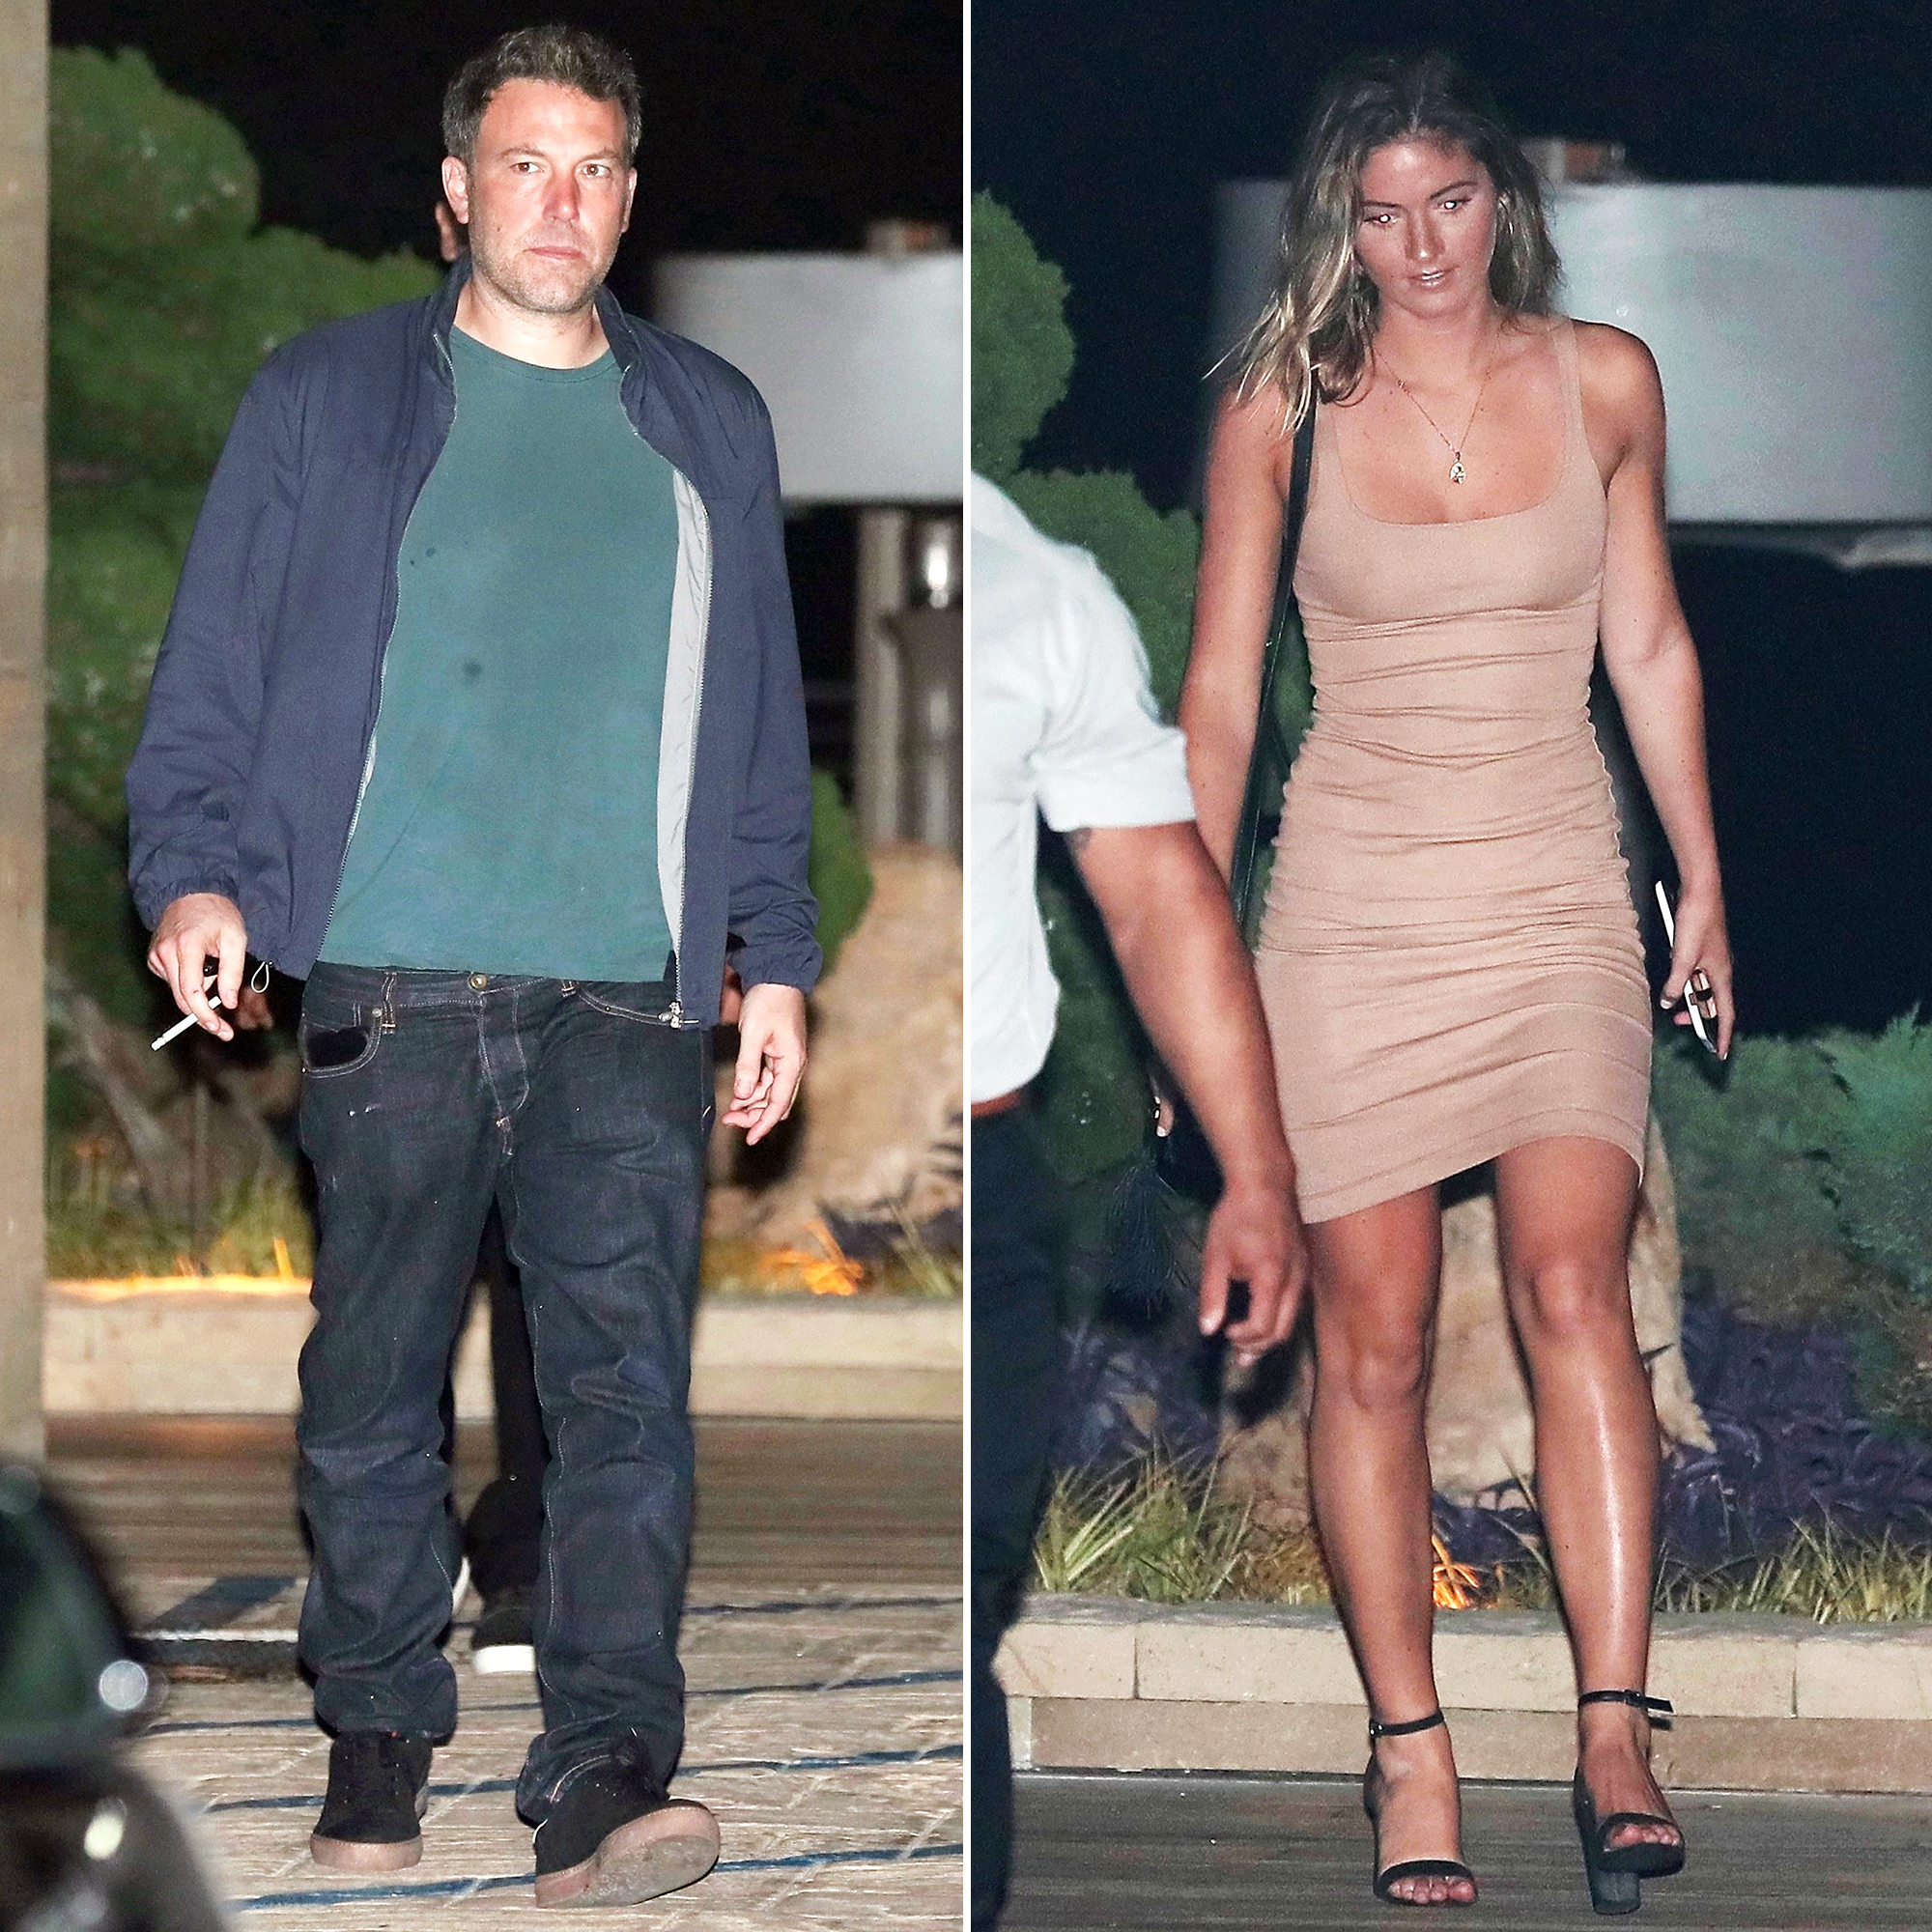 Ben Affleck Shauna Sexton Dinner Playboy Model